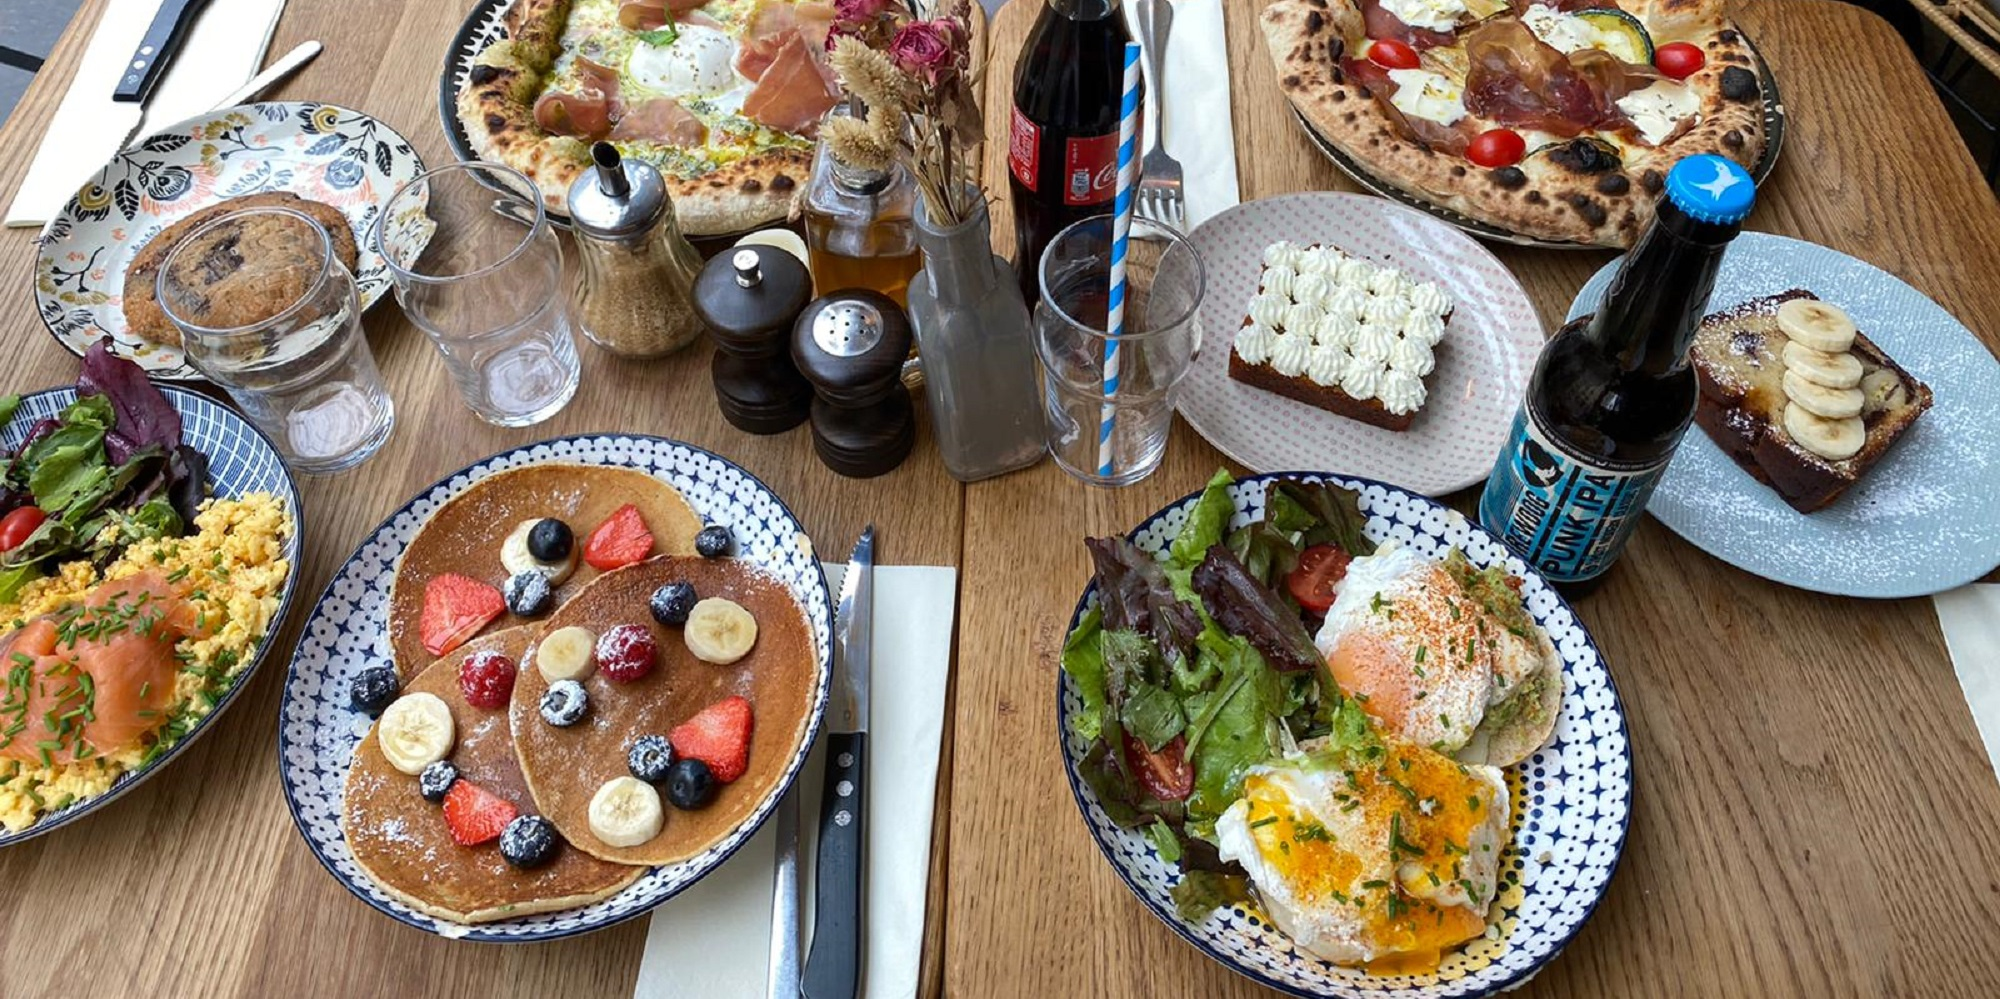 Brunch La Marina (75010 Paris)